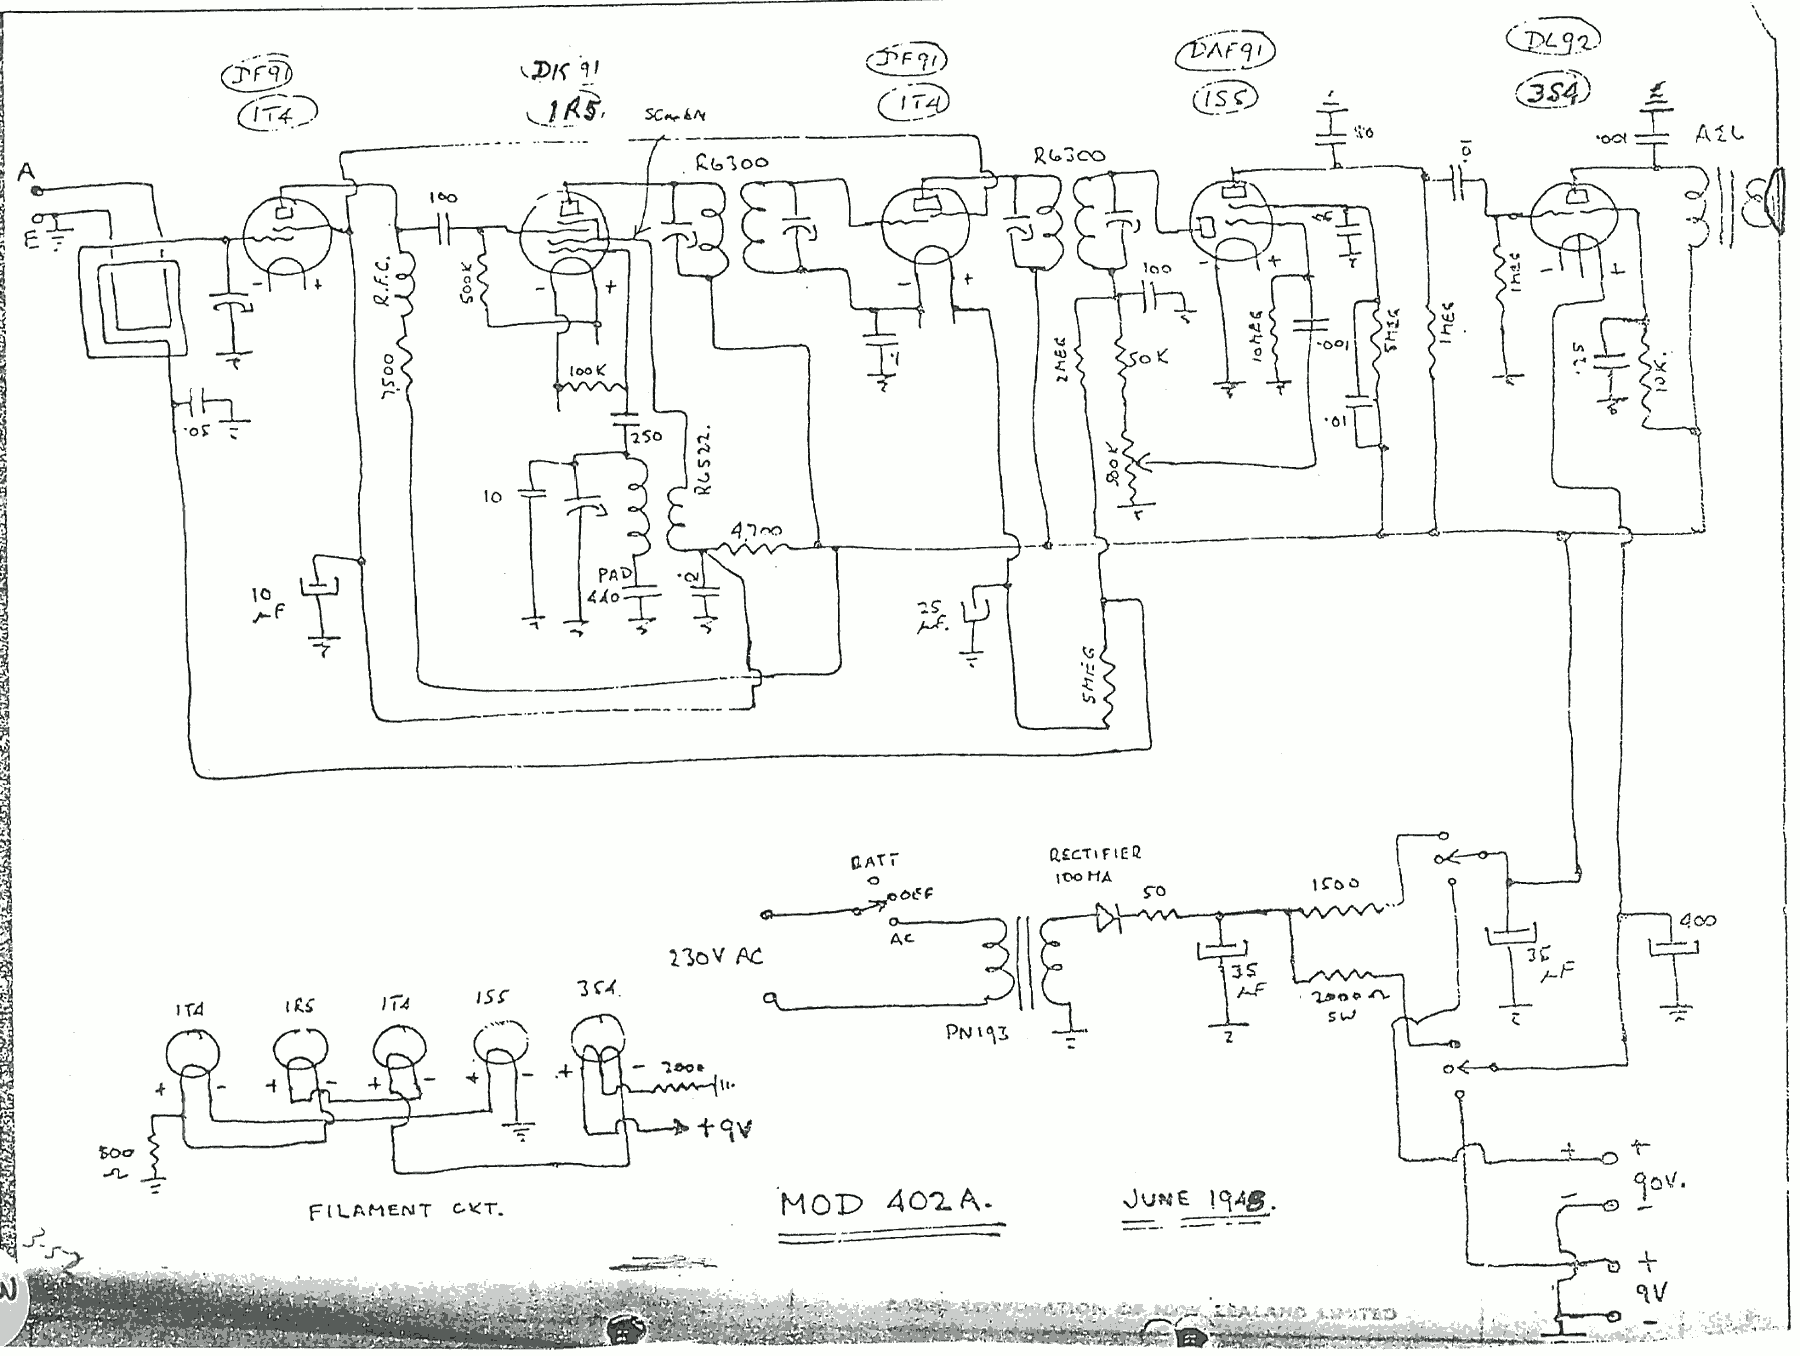 1947 Columbus model 402A Schematic